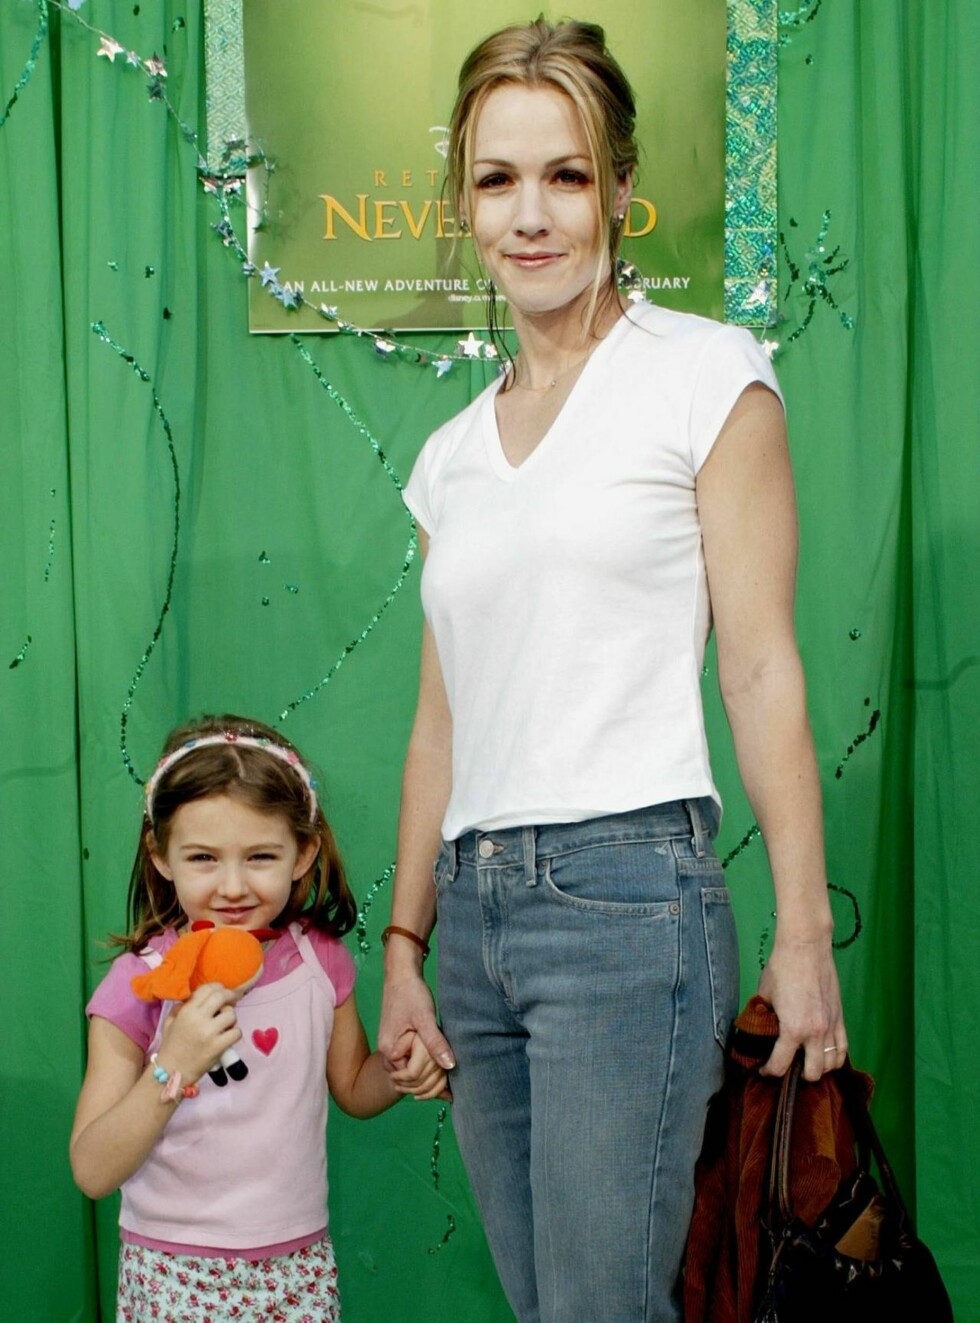 """400786 03:  Actress Jennie Garth and her daughter Luca Fatinilli attend the film premiere of """"Return To Never Land"""" February10, 2002 in Los Angeles, CA.  The film will be released February 15, 2002.  (Photo by Frederick M. Brown/Getty Images) ALL OVER PR Foto: All Over Press"""